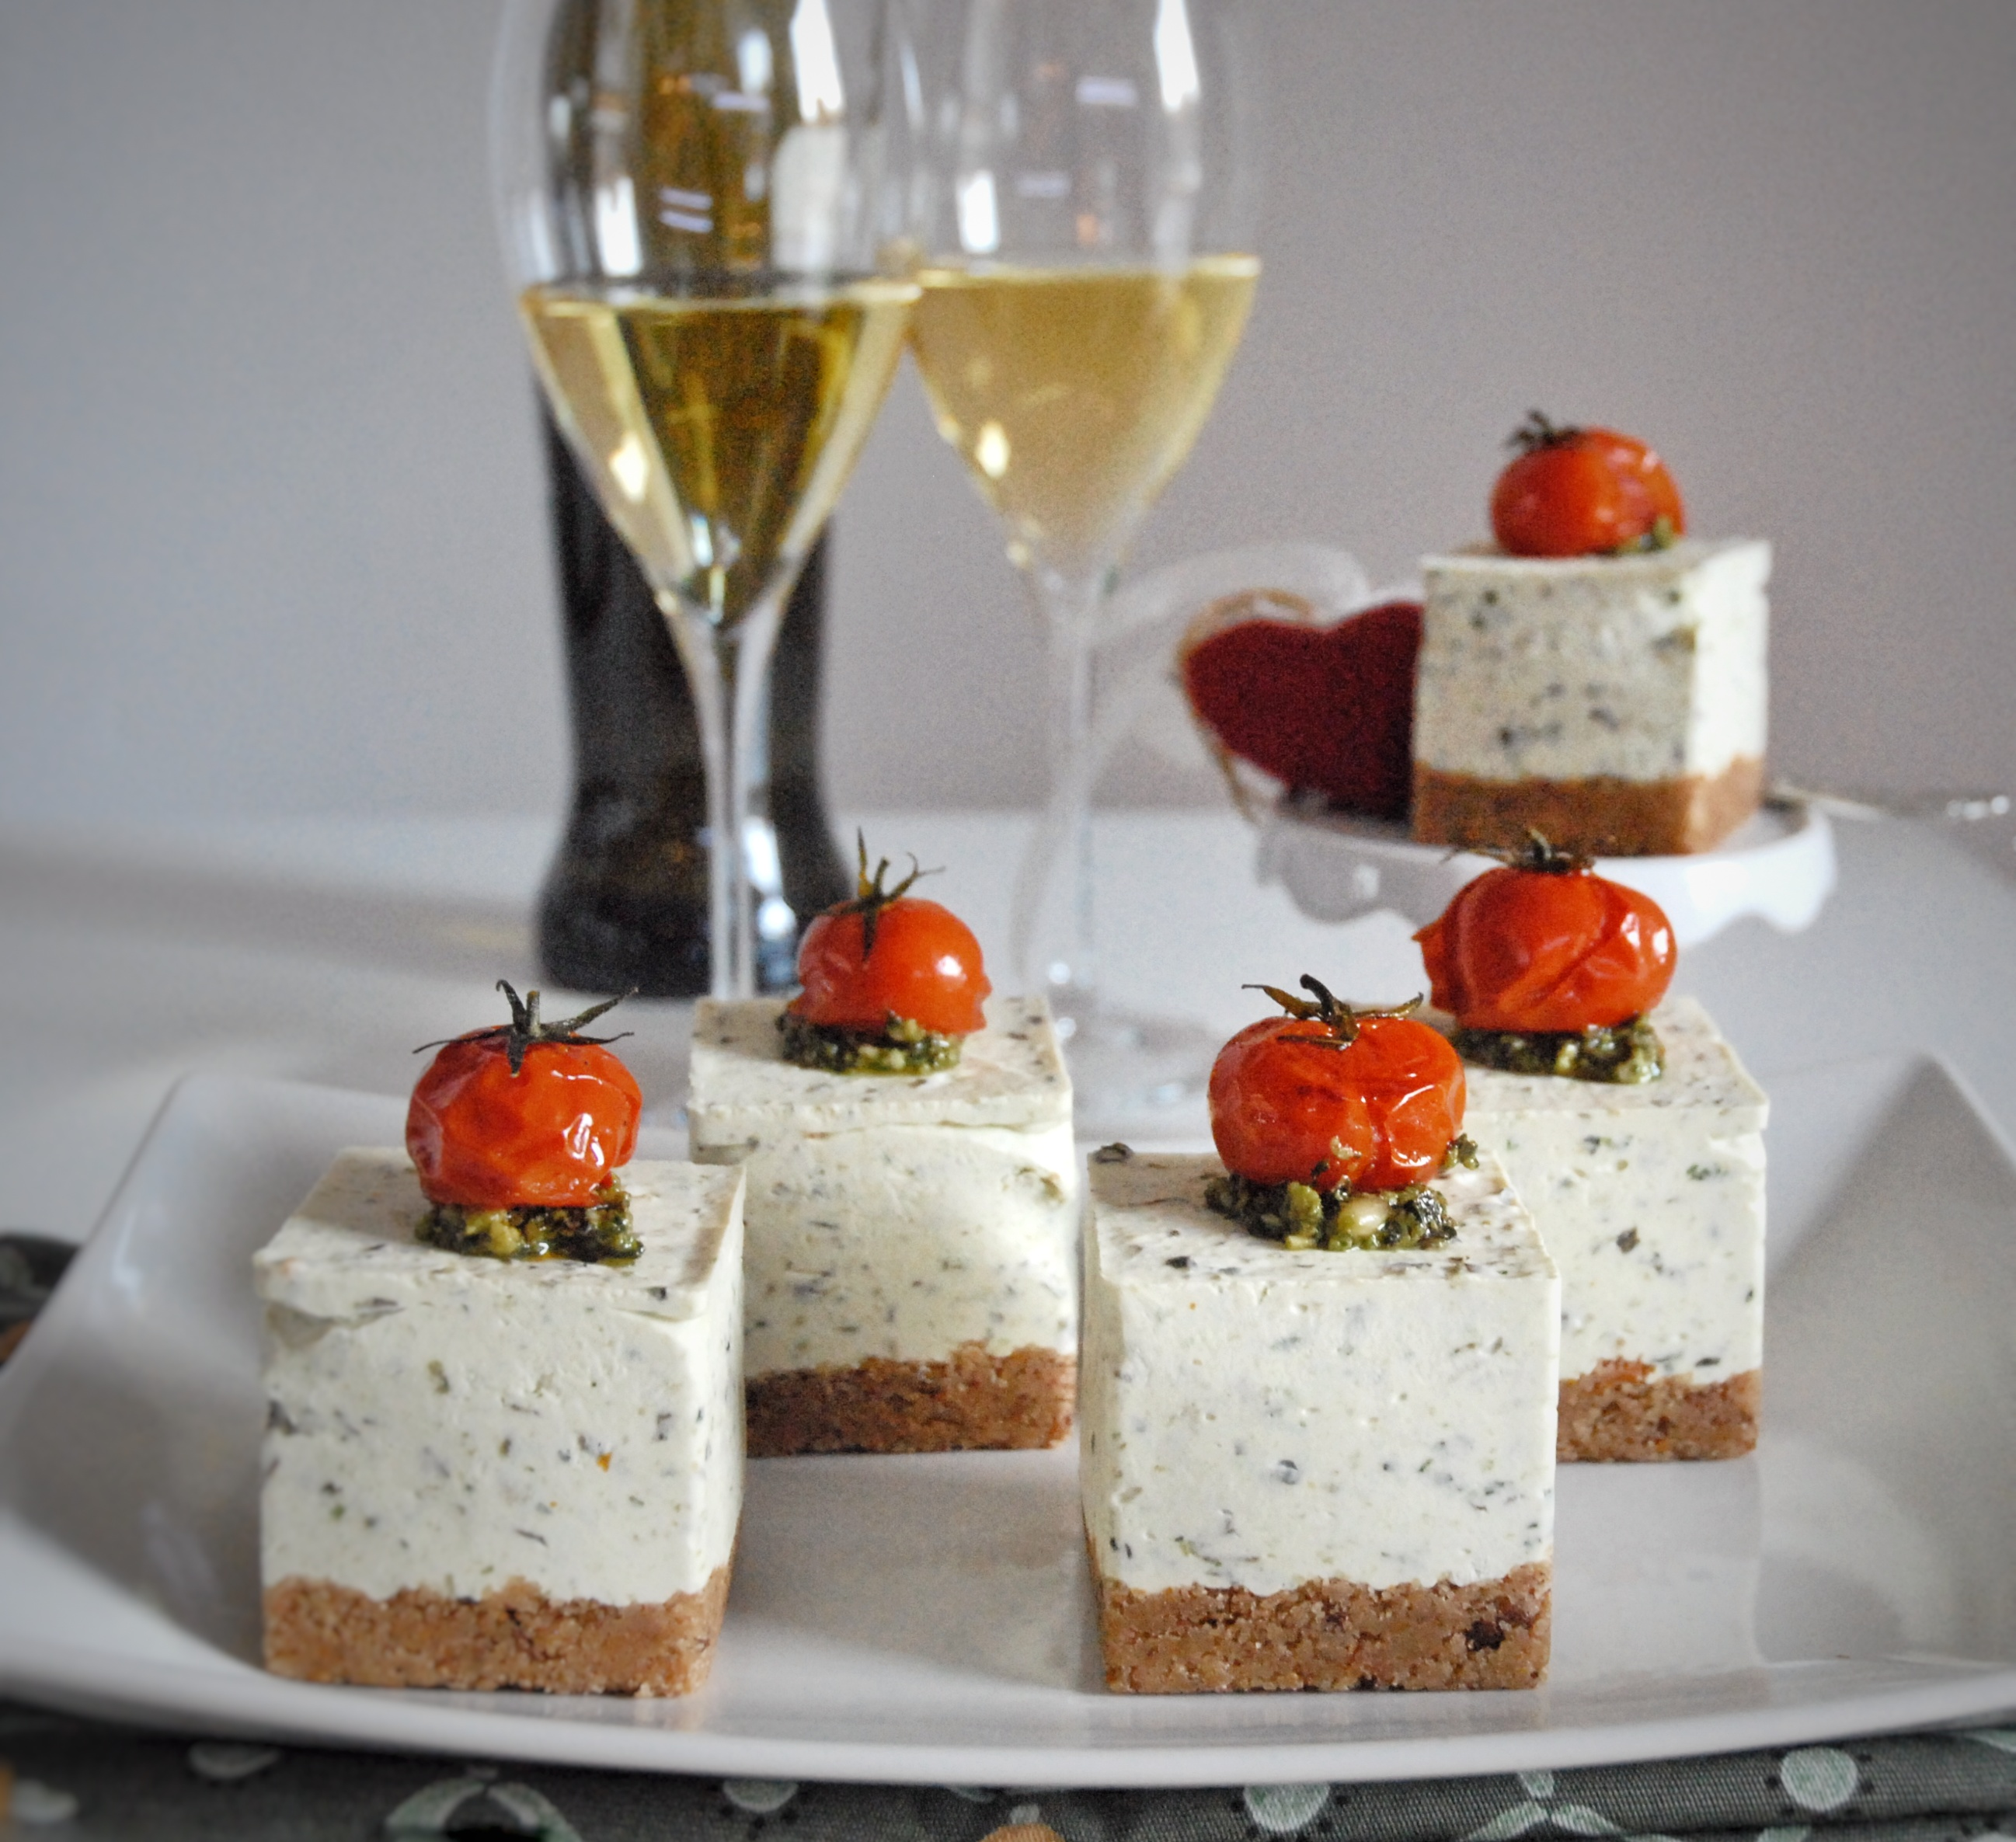 Cheesecake salate al pesto senza cottura